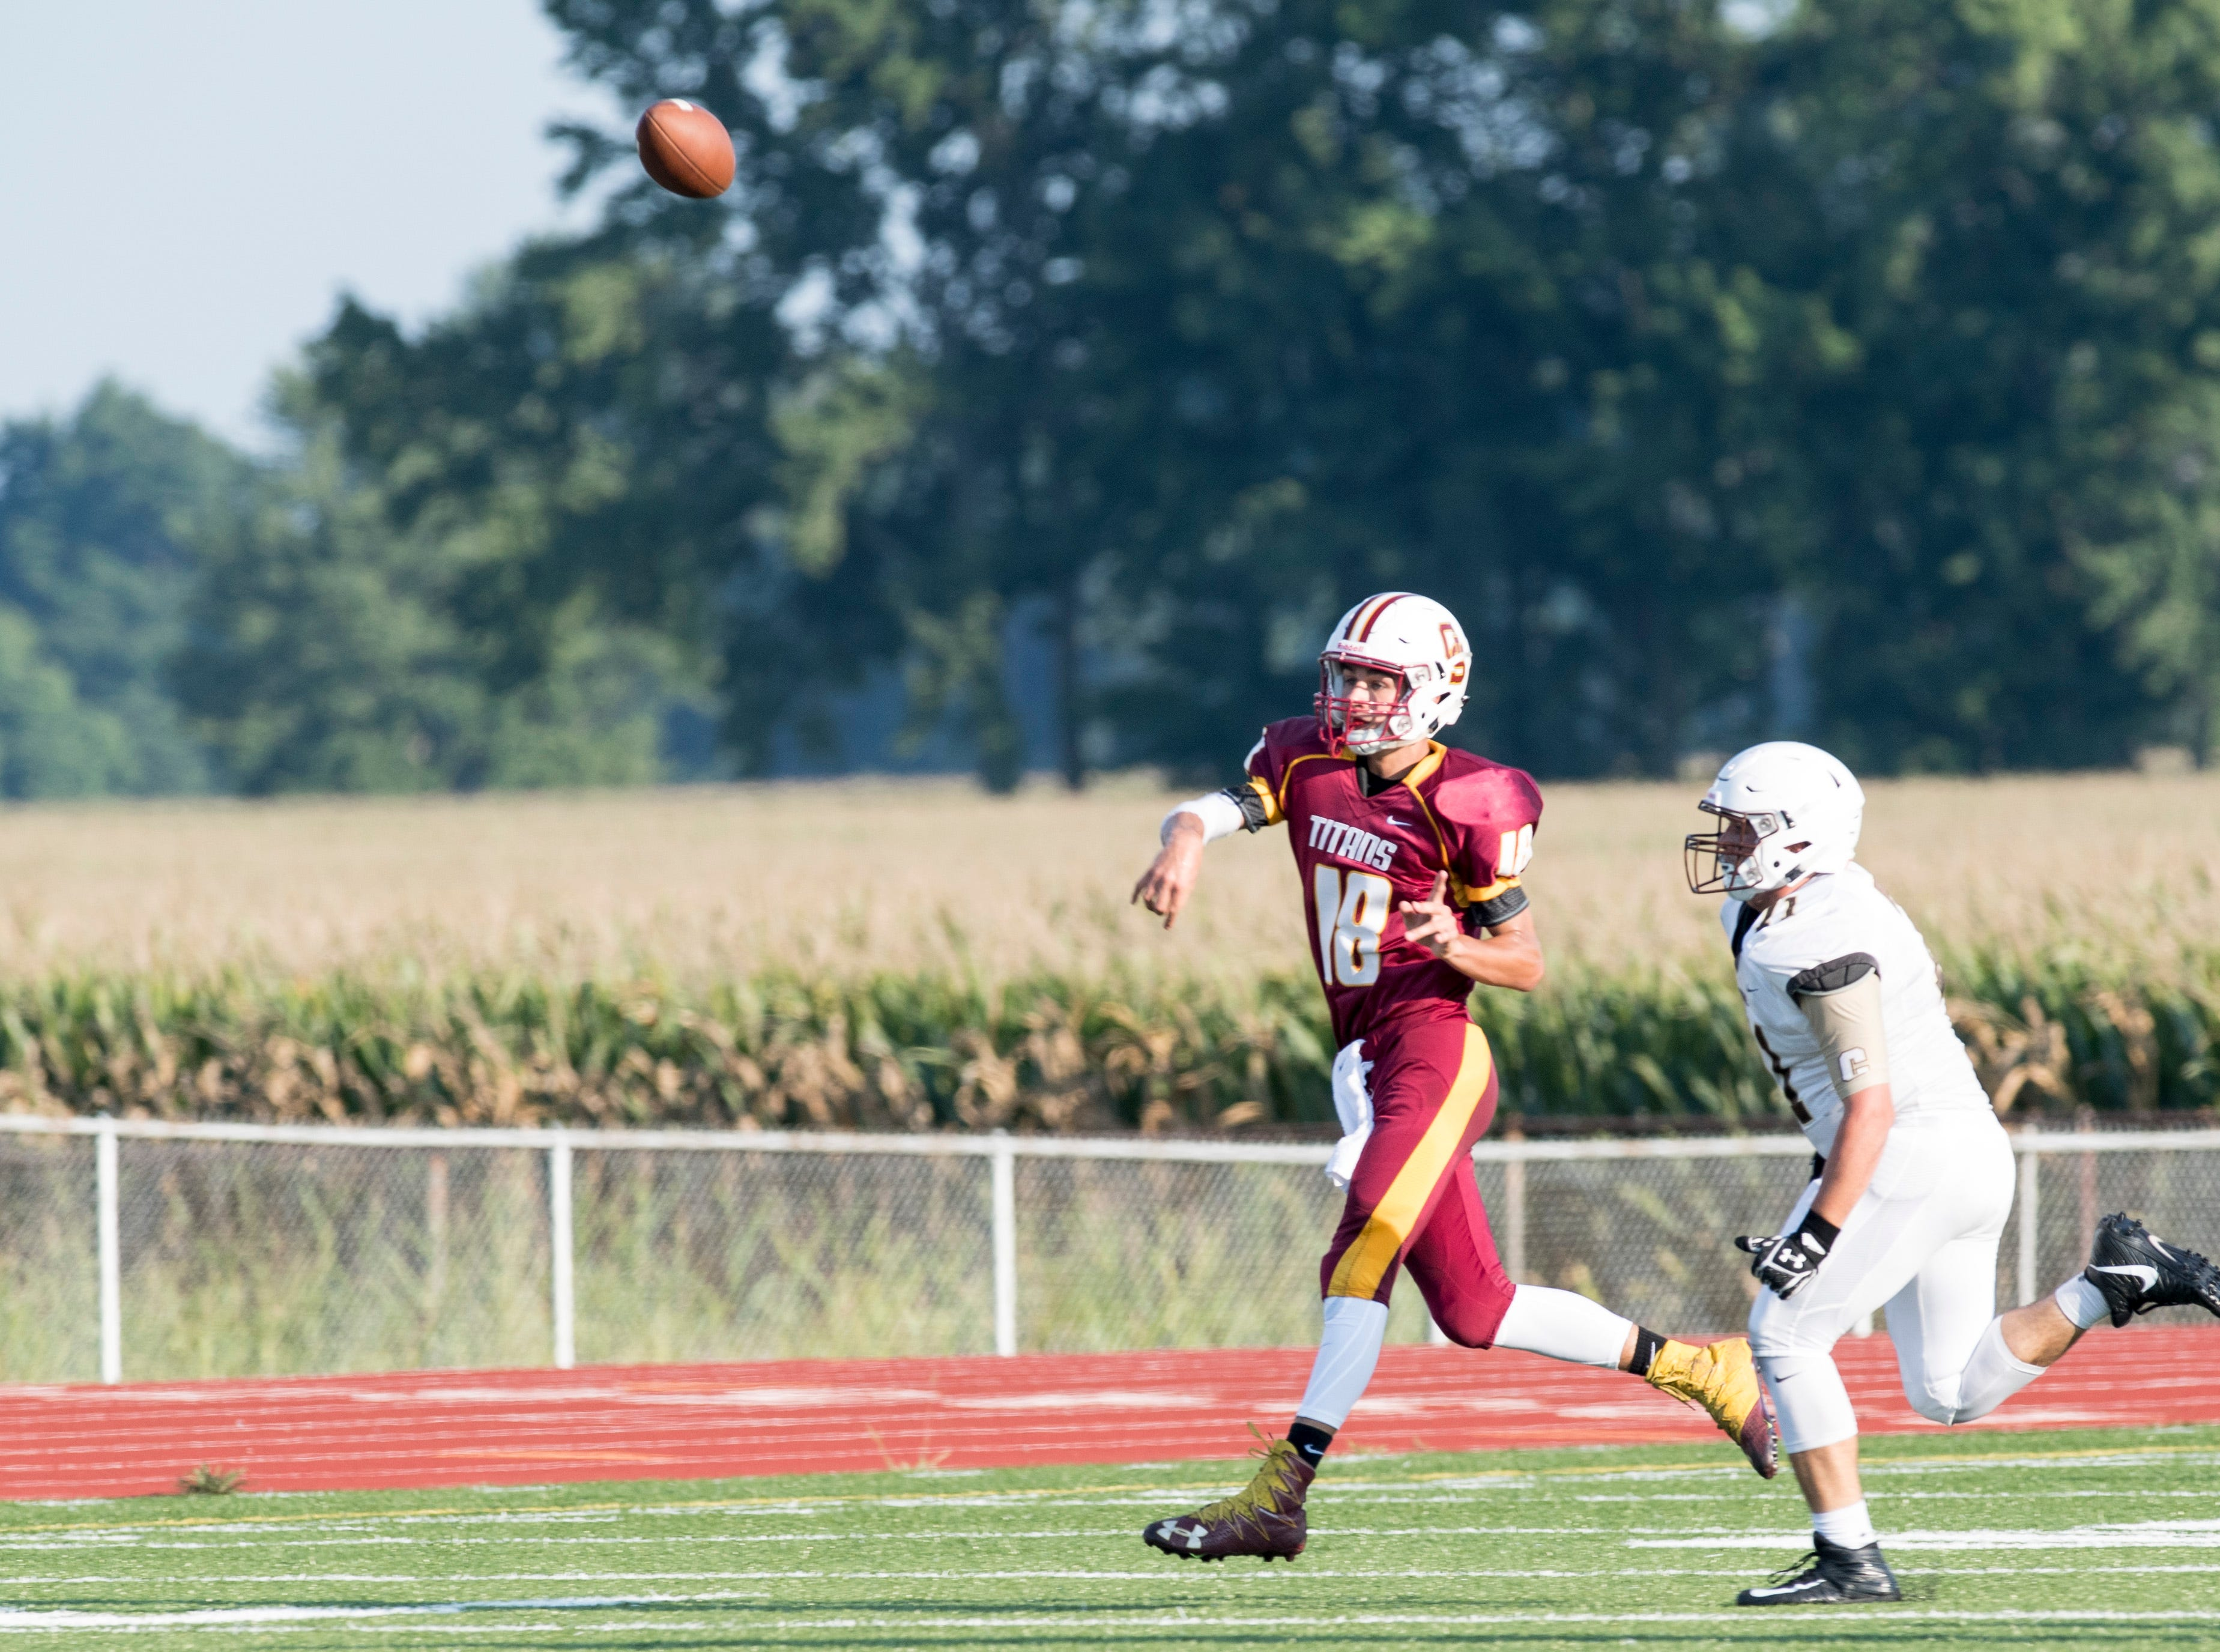 Gibson Southern's Quarterback Brady Allen (18) throws a long pass during a scrimmage against the Evansville Central Bears Friday, August 10, 2018.